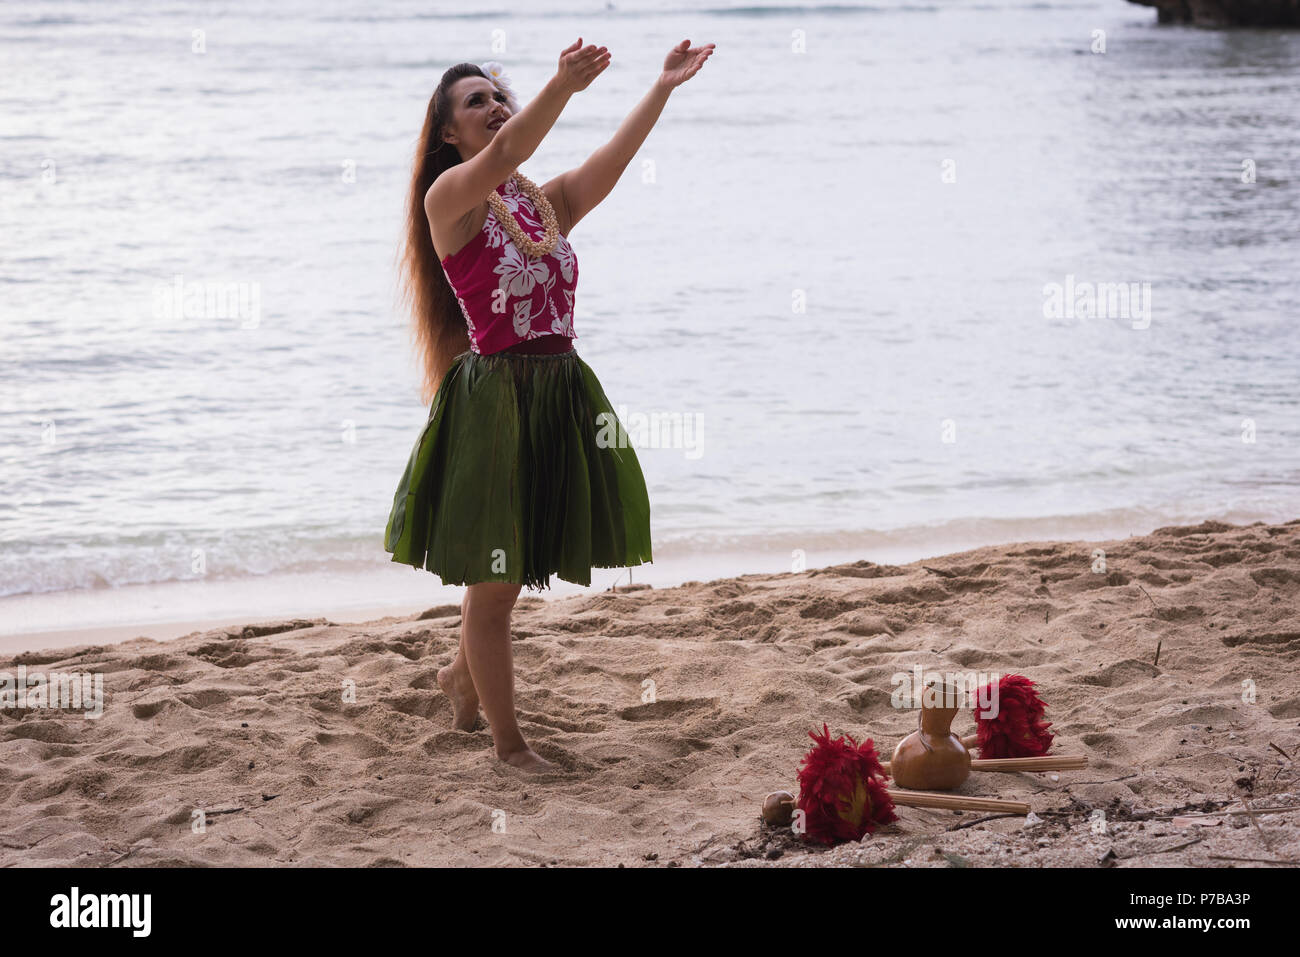 Hawaii hula dancer in costume dancing - Stock Image